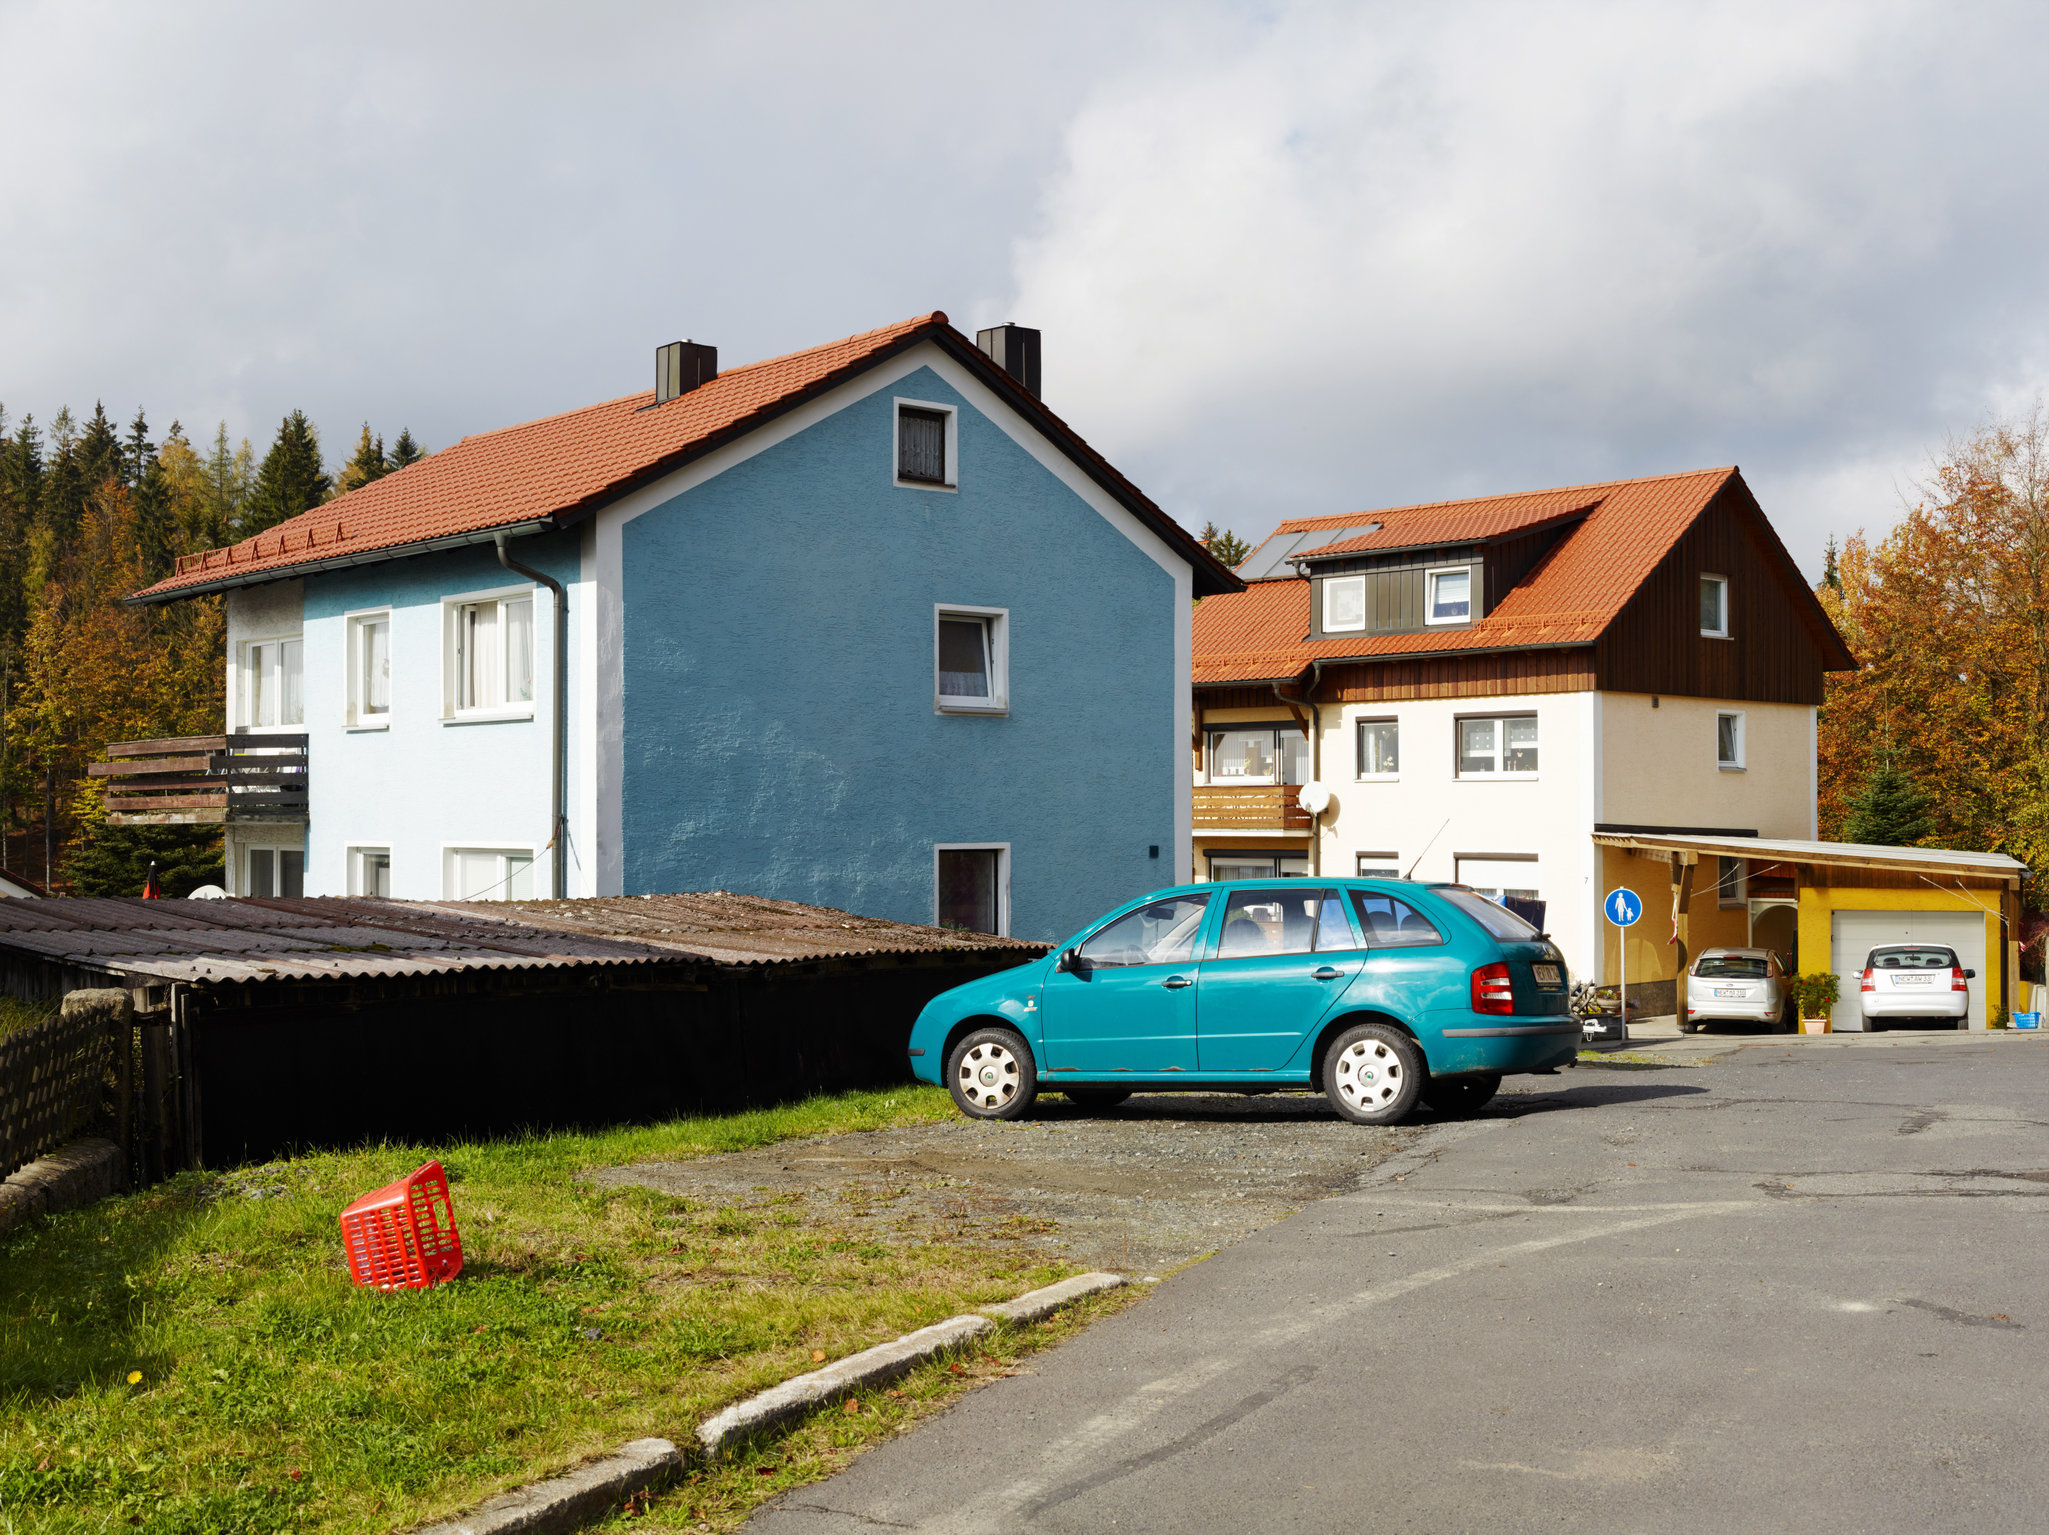 Flossenbürg, Germany 2014